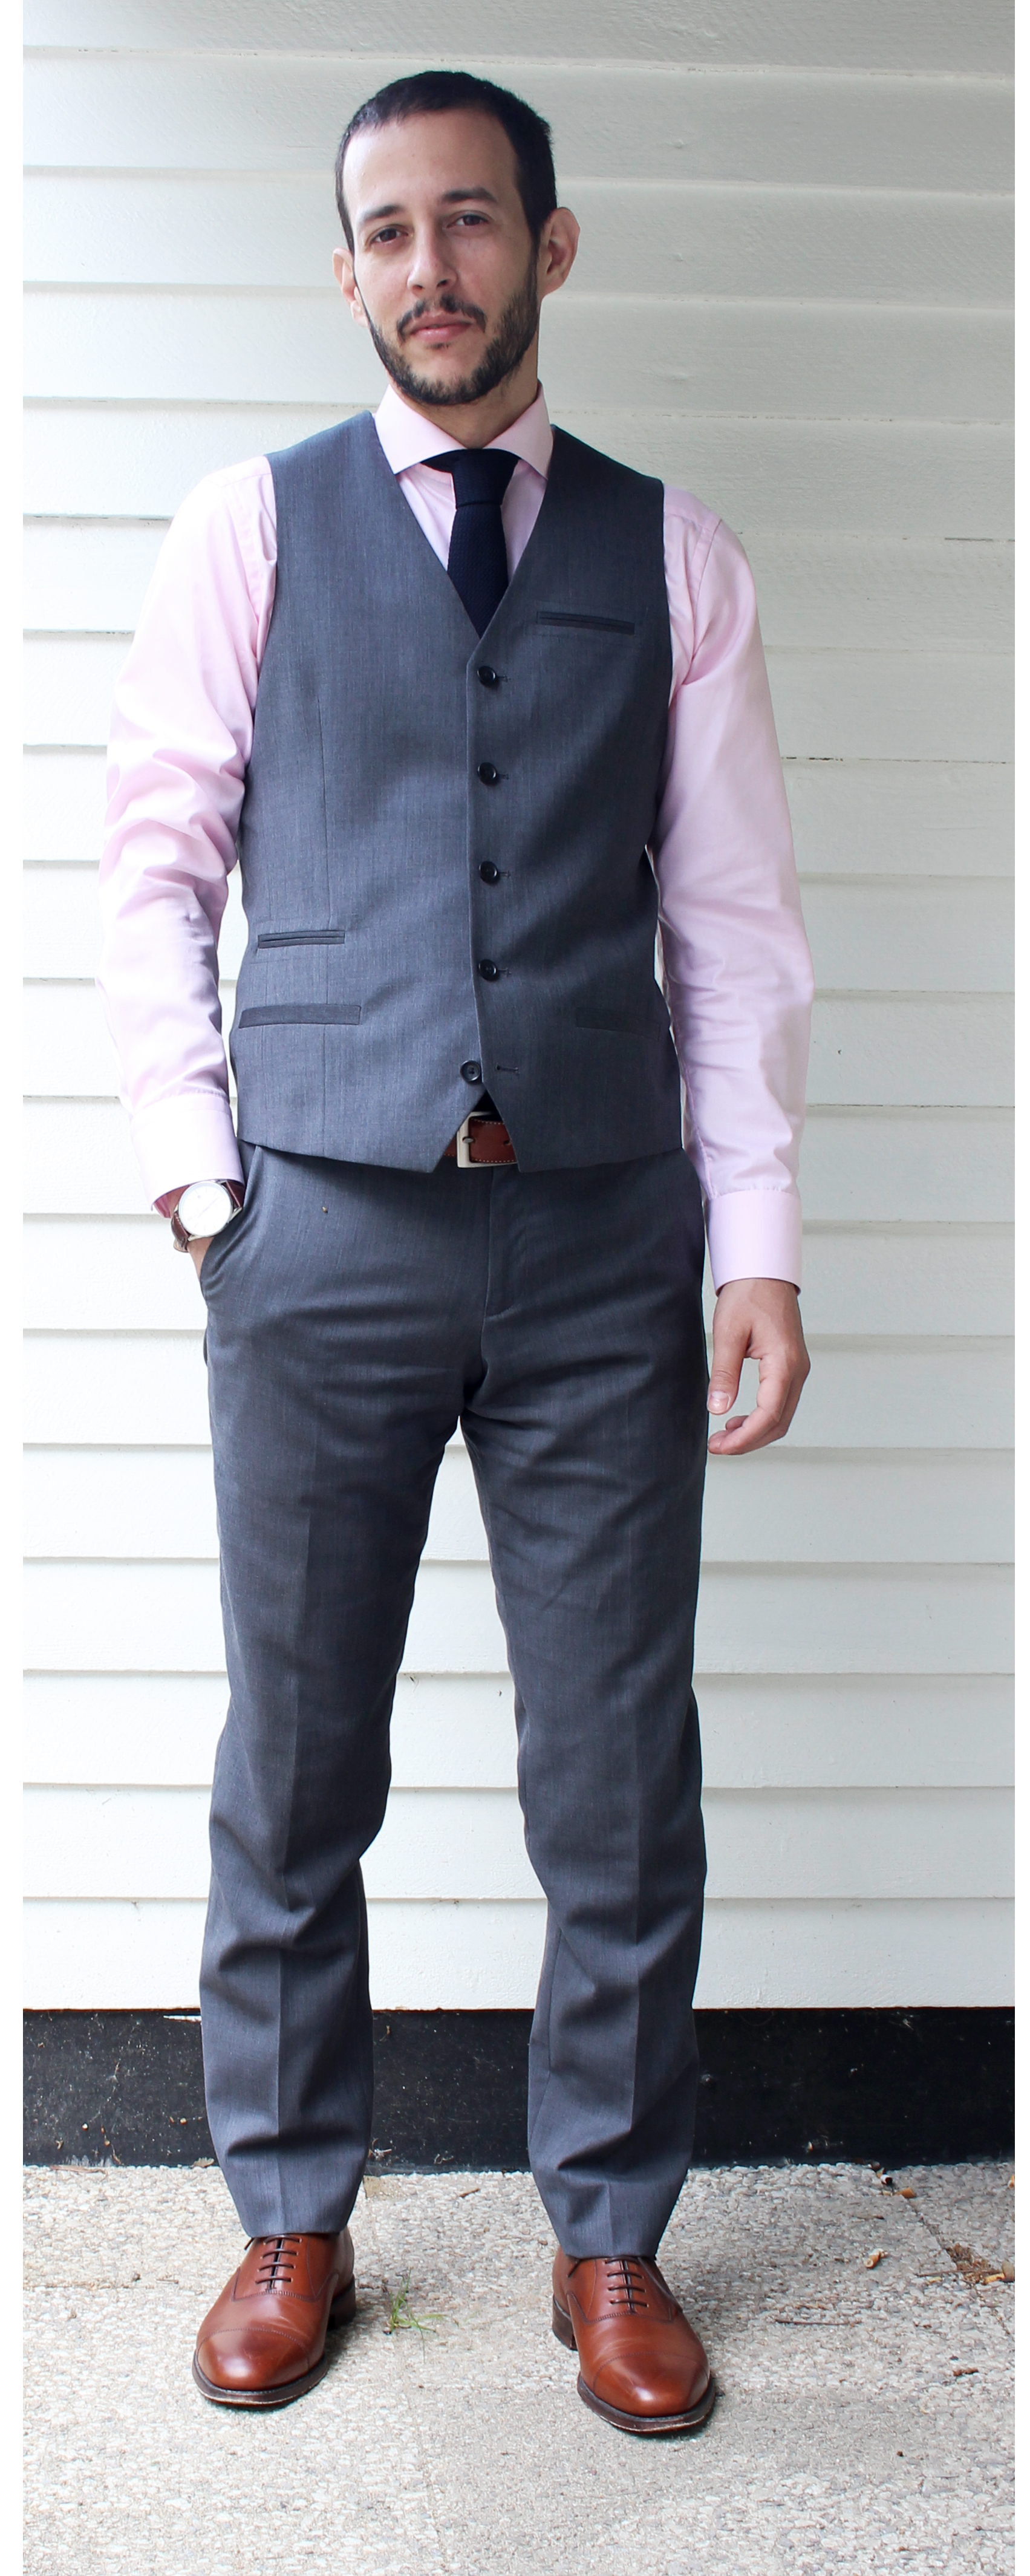 What to wear with grey suit jacket?